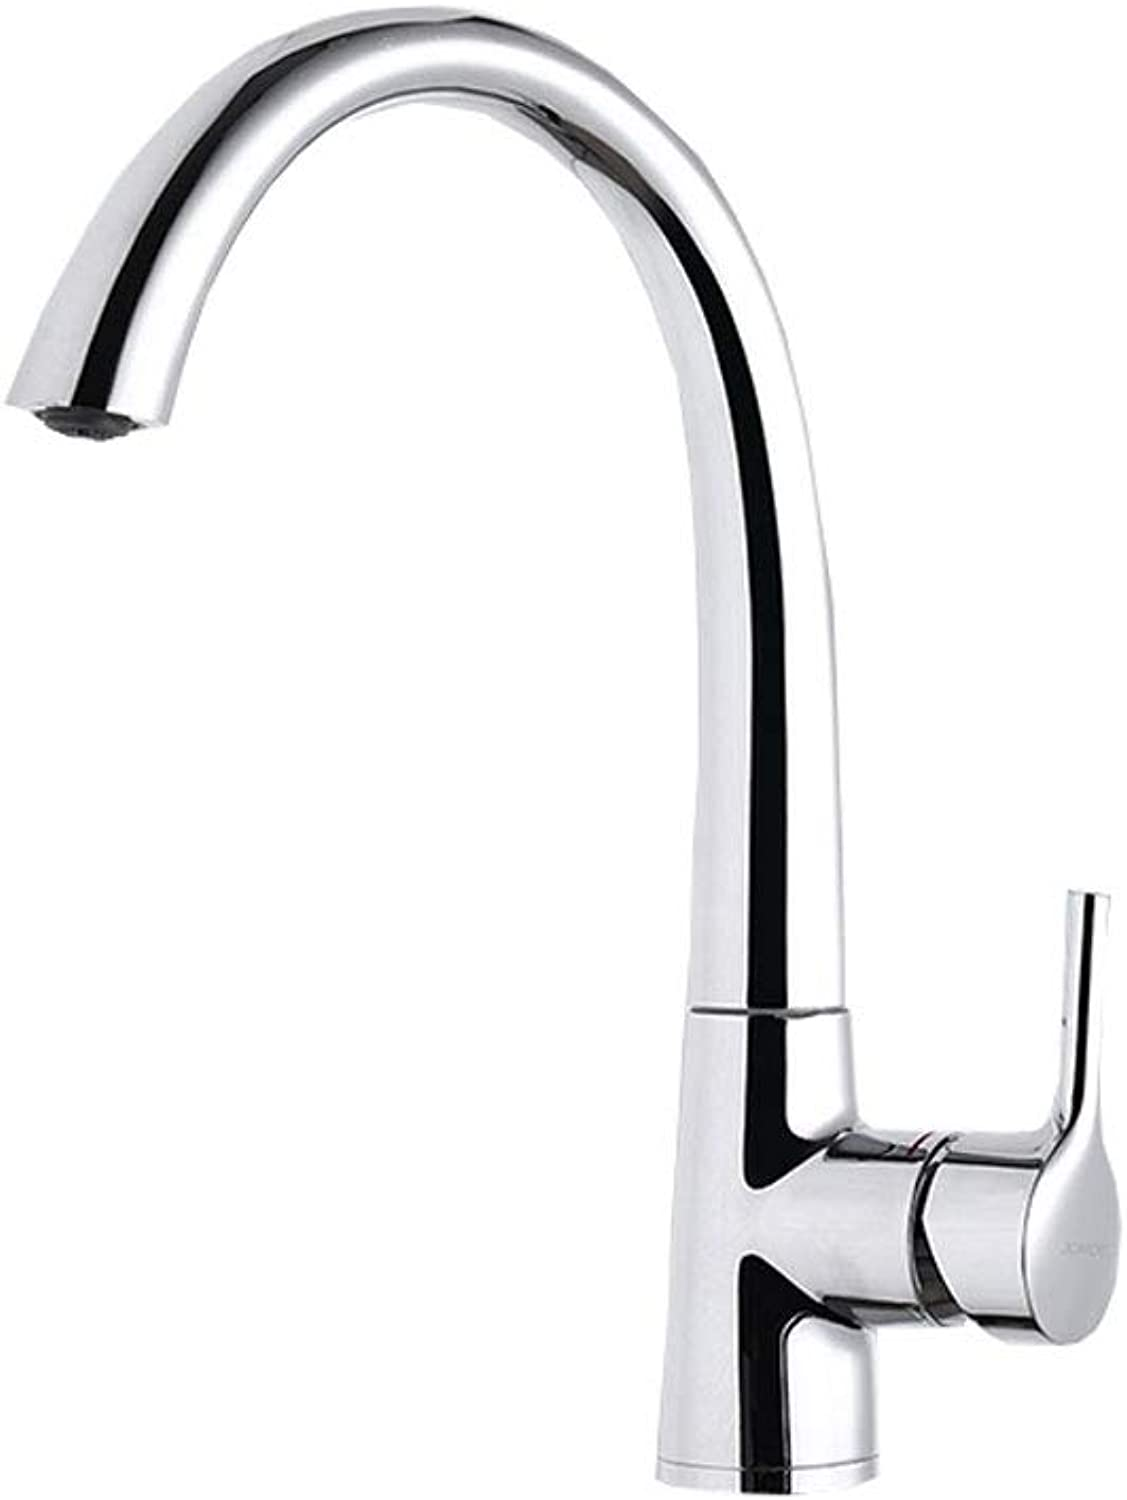 Kaiyu Faucet Kitchen Sink Hot And Cold Faucet Sink Faucet